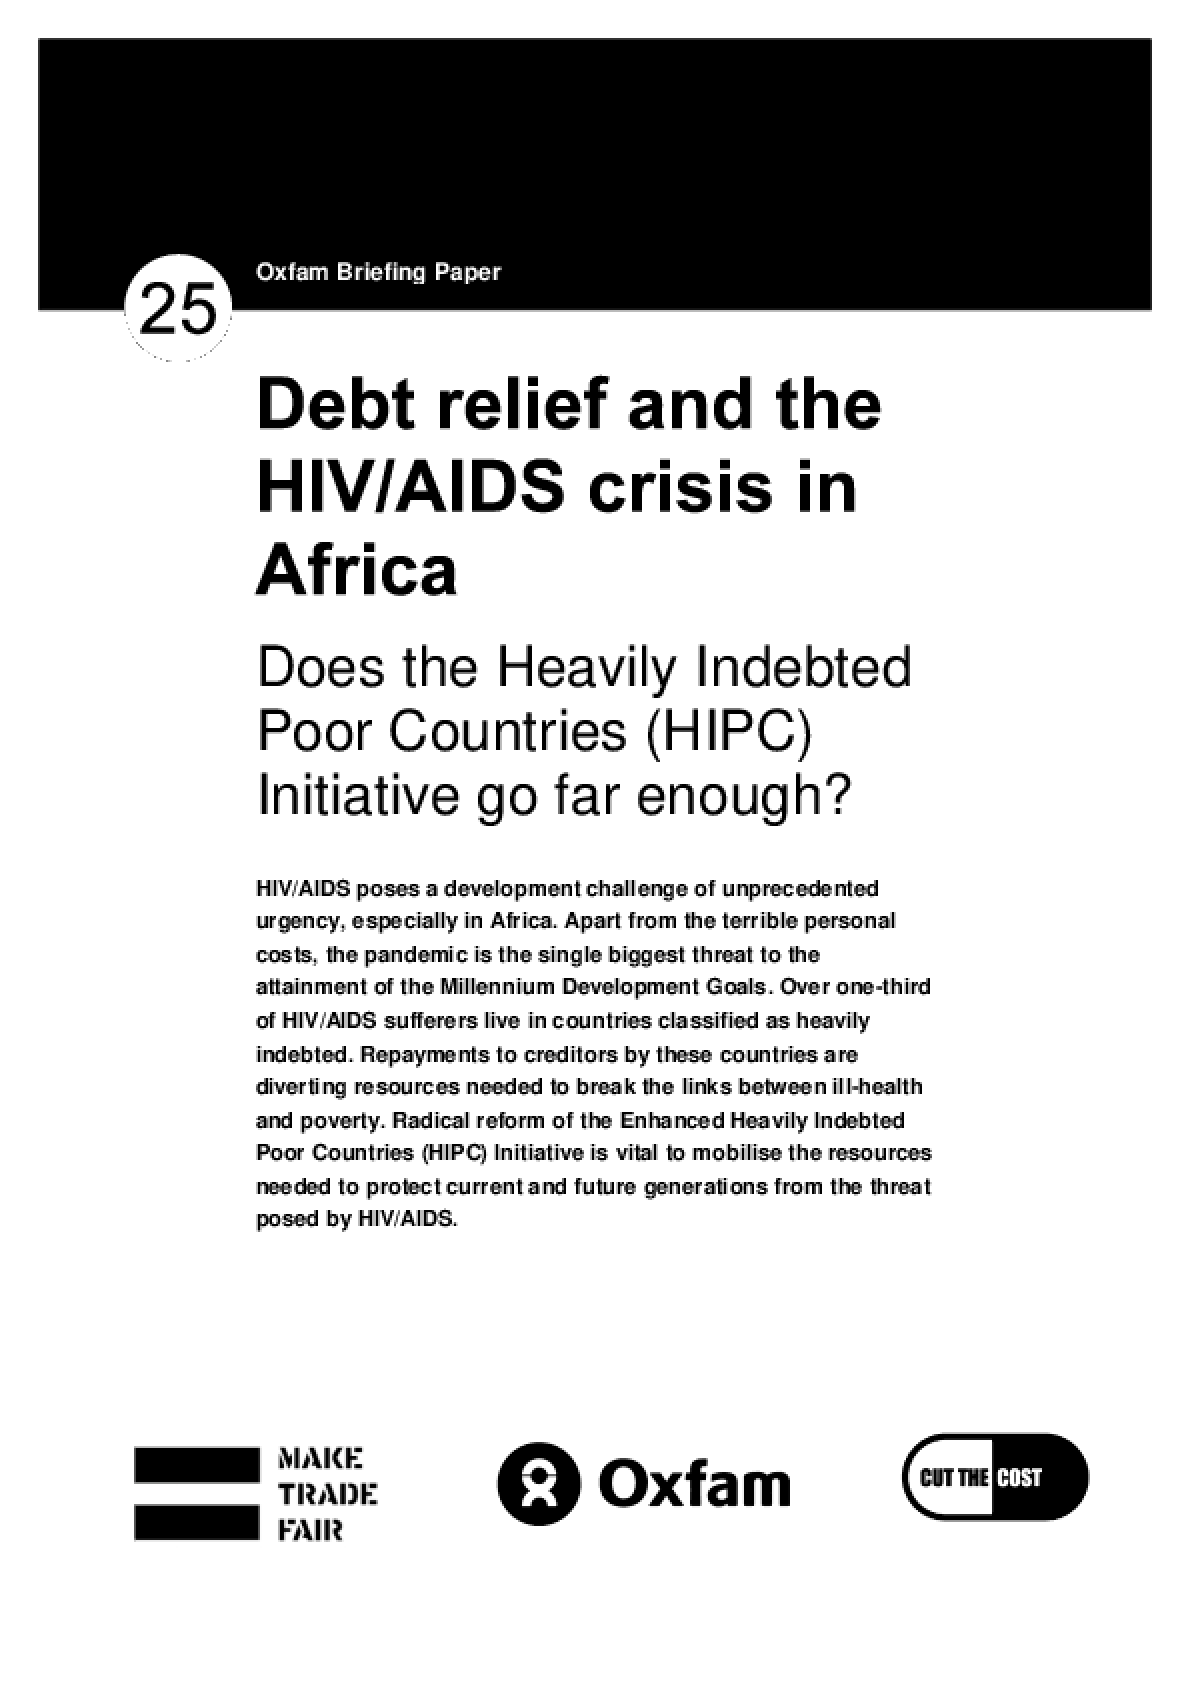 Debt Relief and the HIV/AIDS Crisis in Africa: Does the Heavily Indebted Poor Countries (HIPC) initiative go far enough?